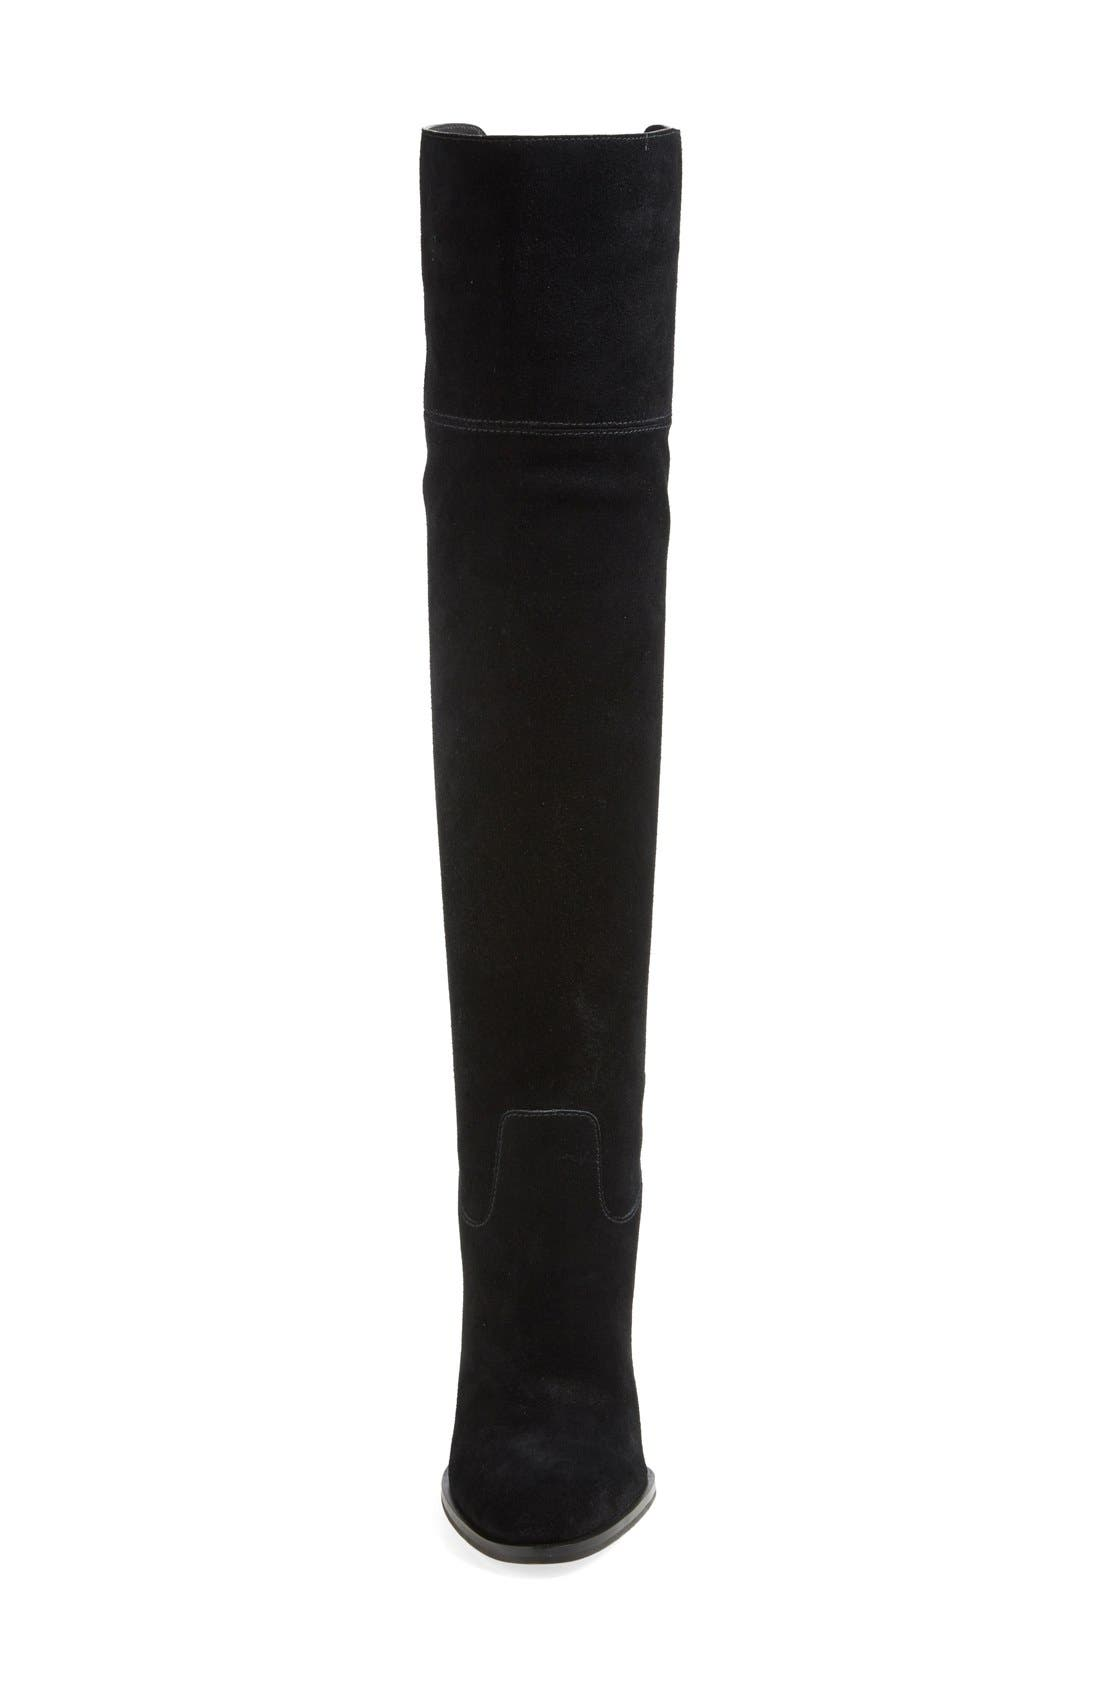 'Regina' Over the Knee Boot,                             Alternate thumbnail 4, color,                             001